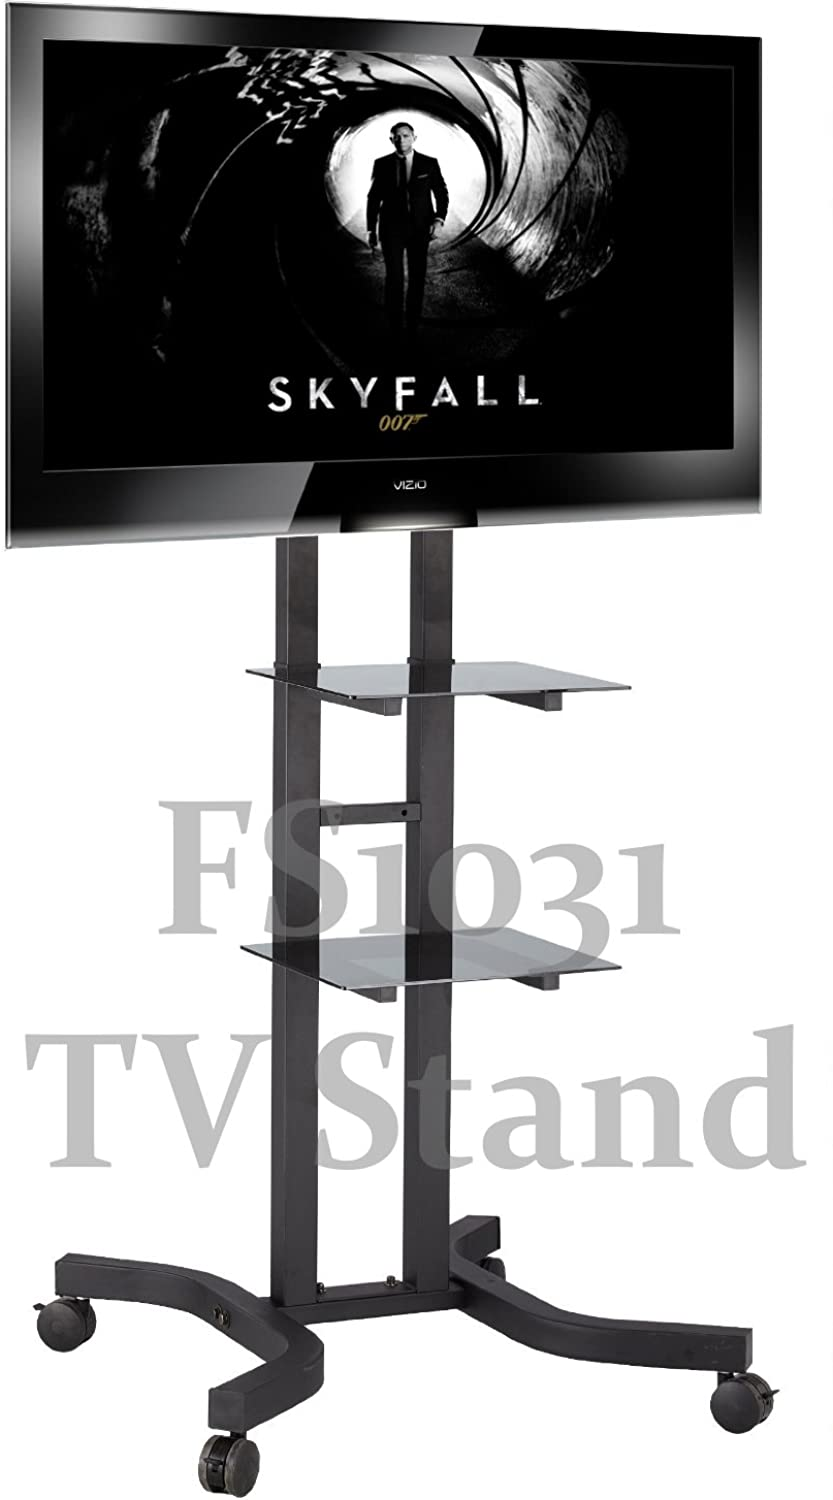 TS1031 1.5m Tall Exhibition Display Stand TV Trolley Floor Stand w  Mounting Bracket for 40-55  LCD Plasma TVs & Two Black Glass Shelves, Tilt up down 5   10 °, Adjustable height  127 to 153cm, Up to Vesa 800x400 mm